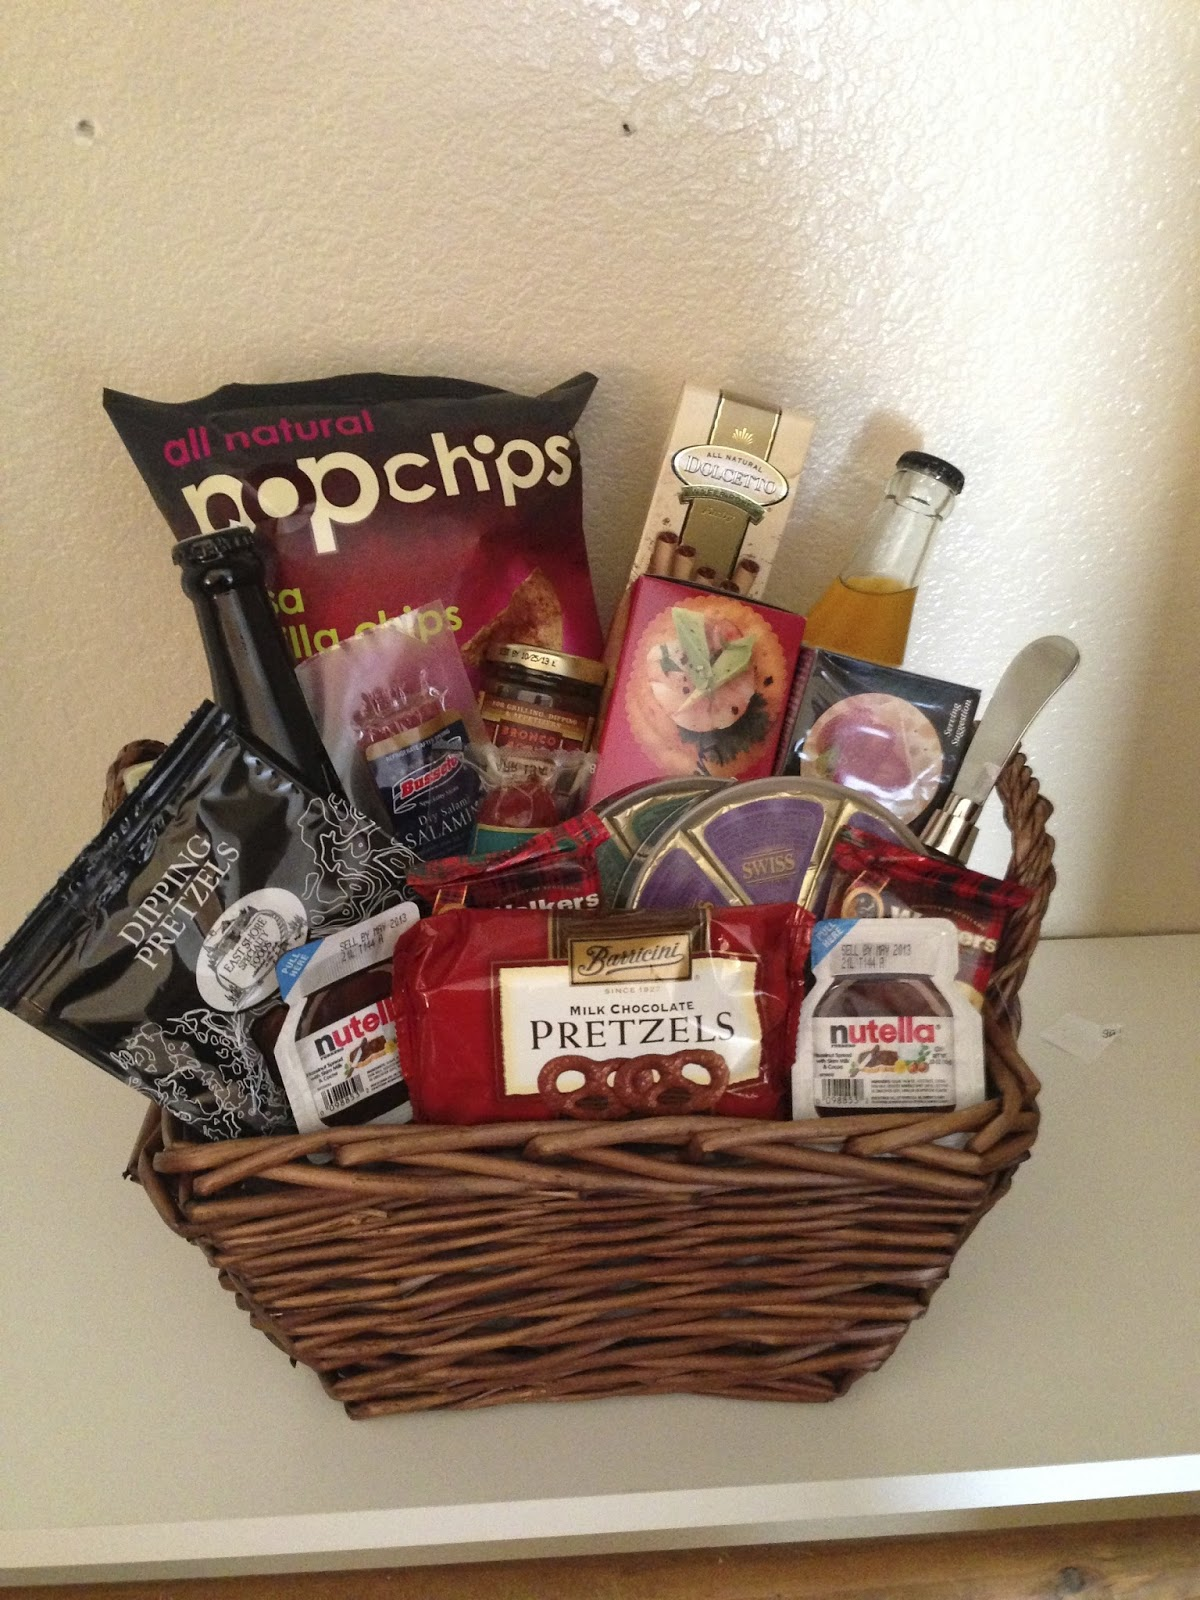 Wedding Night Gift Ideas For Bride : ... Gift Basket or Wedding Night Midnight Snack for Bride and Groom